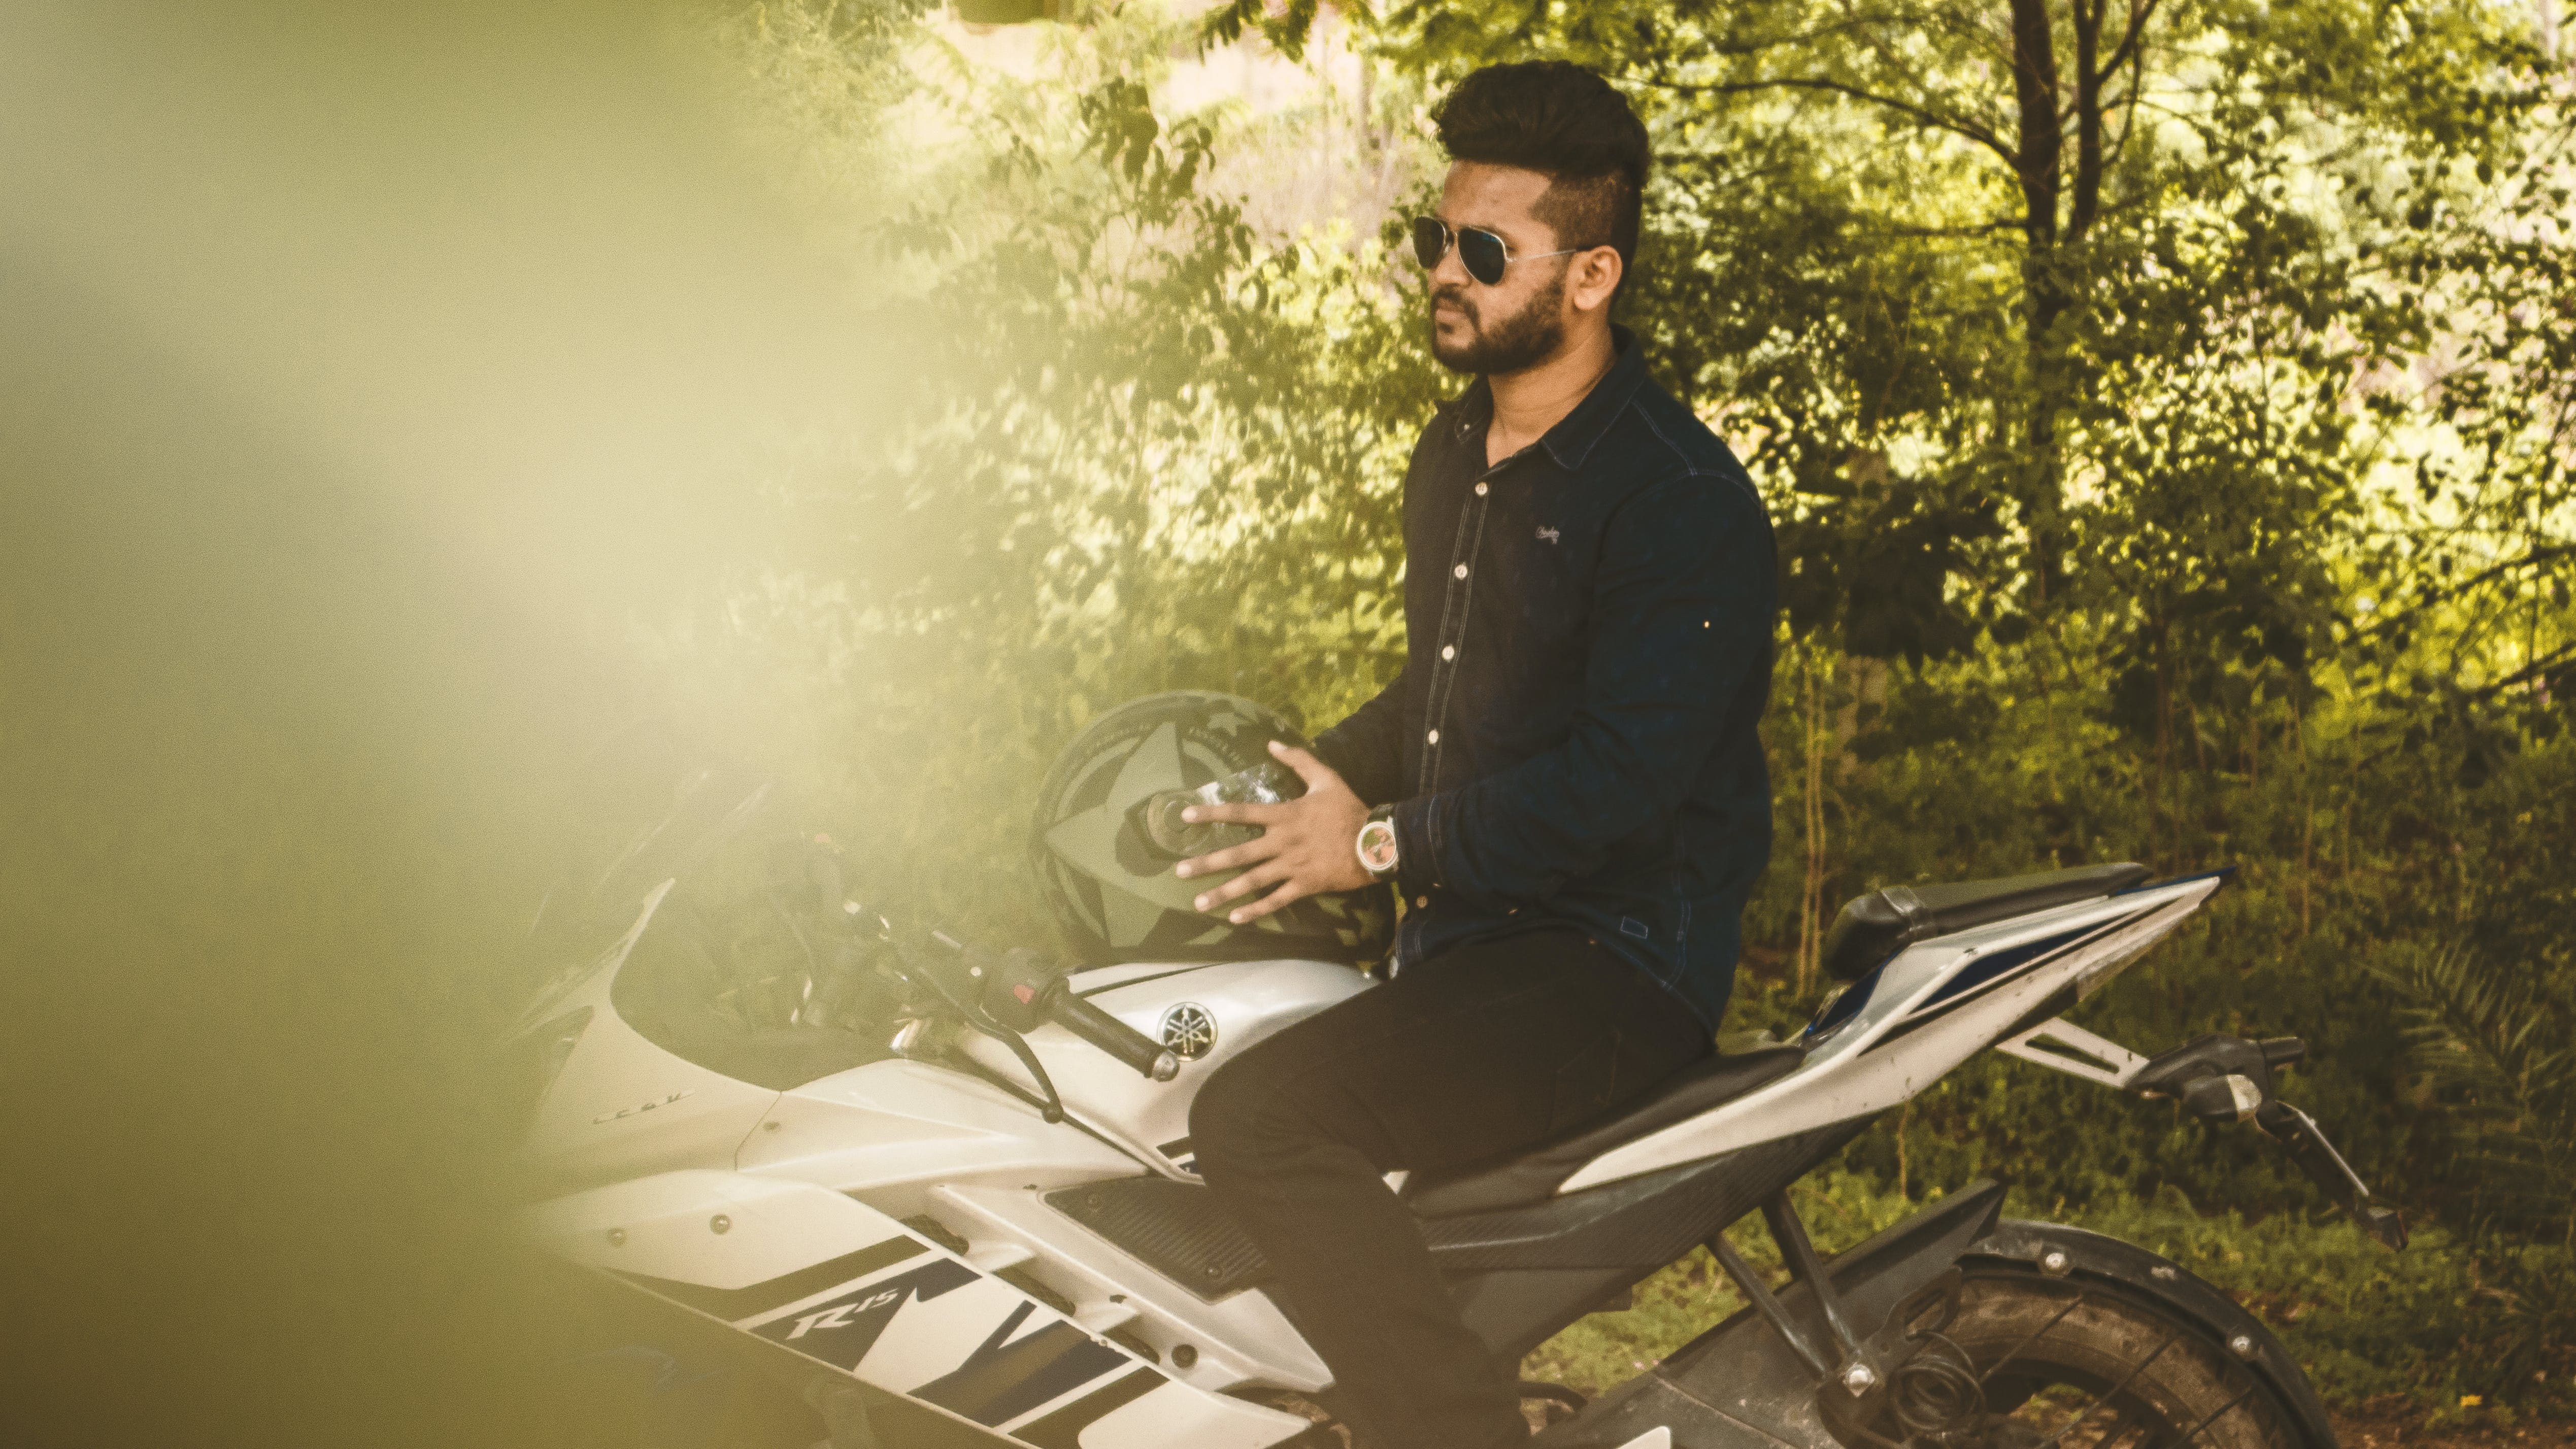 Free stock photo of #candid #bike #look #passion #drive #fast, #fashion #photography #street